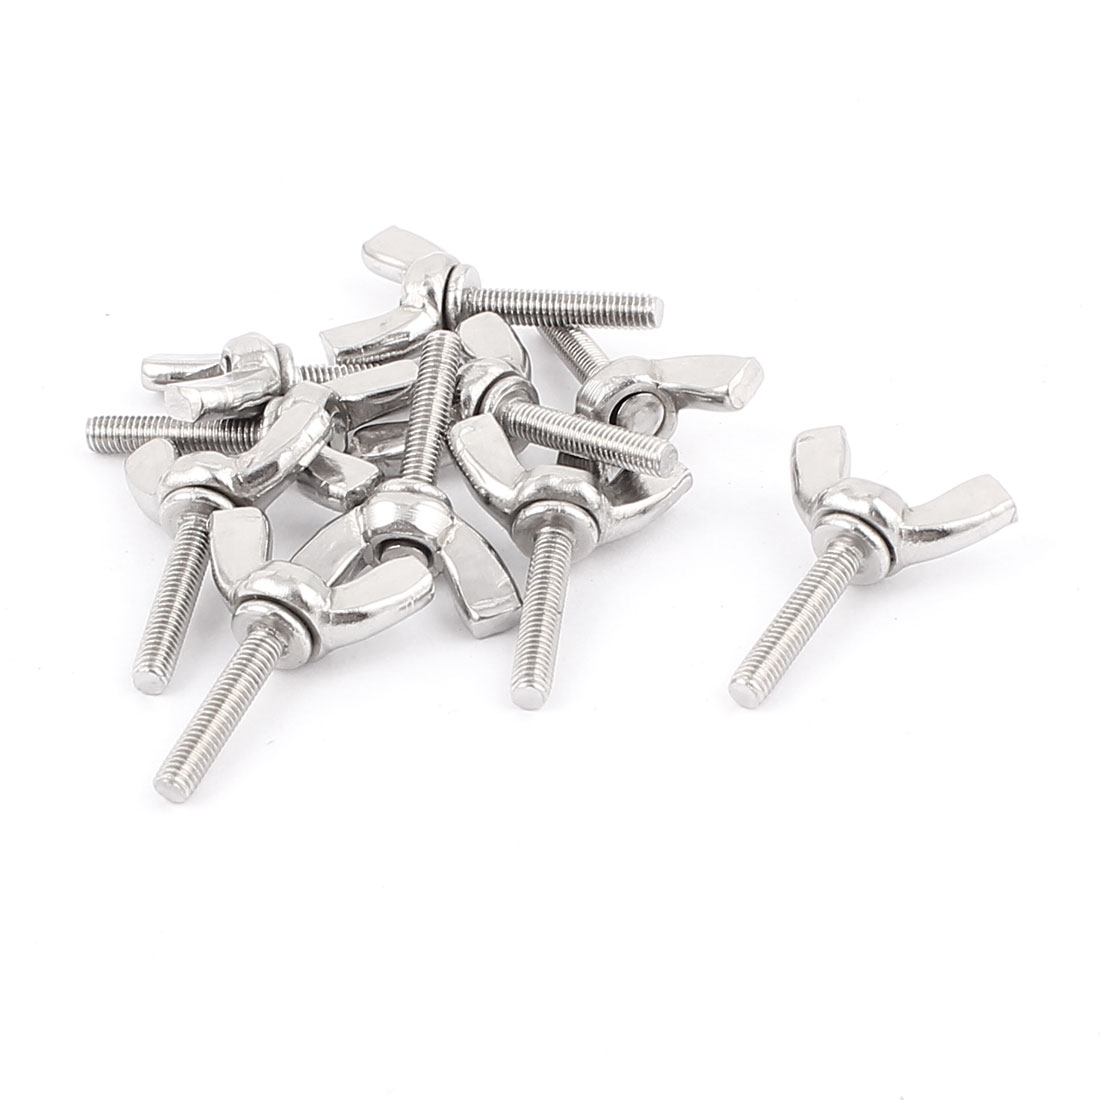 M3x16mm 304 Stainless Steel Butterfly Screw Bolt Wing Bolts 10pcs